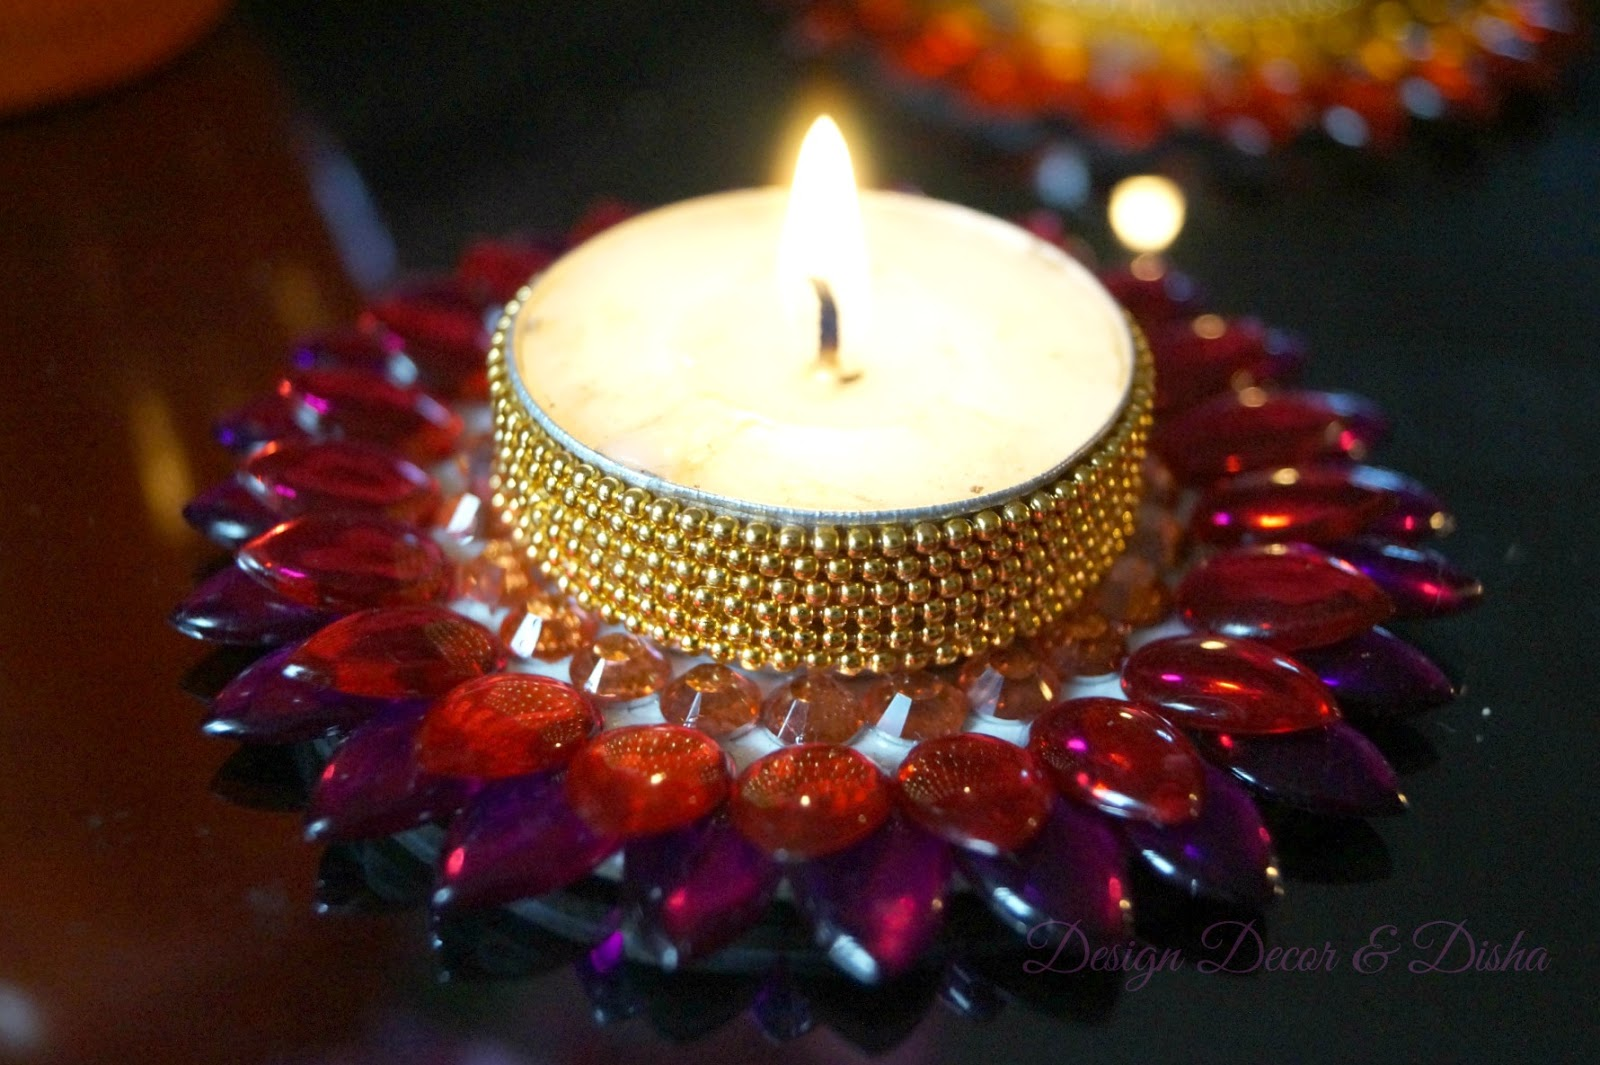 Diwali Decoration Ideas And Crafts Design Decor And Disha An Indian Design And Decor Blog